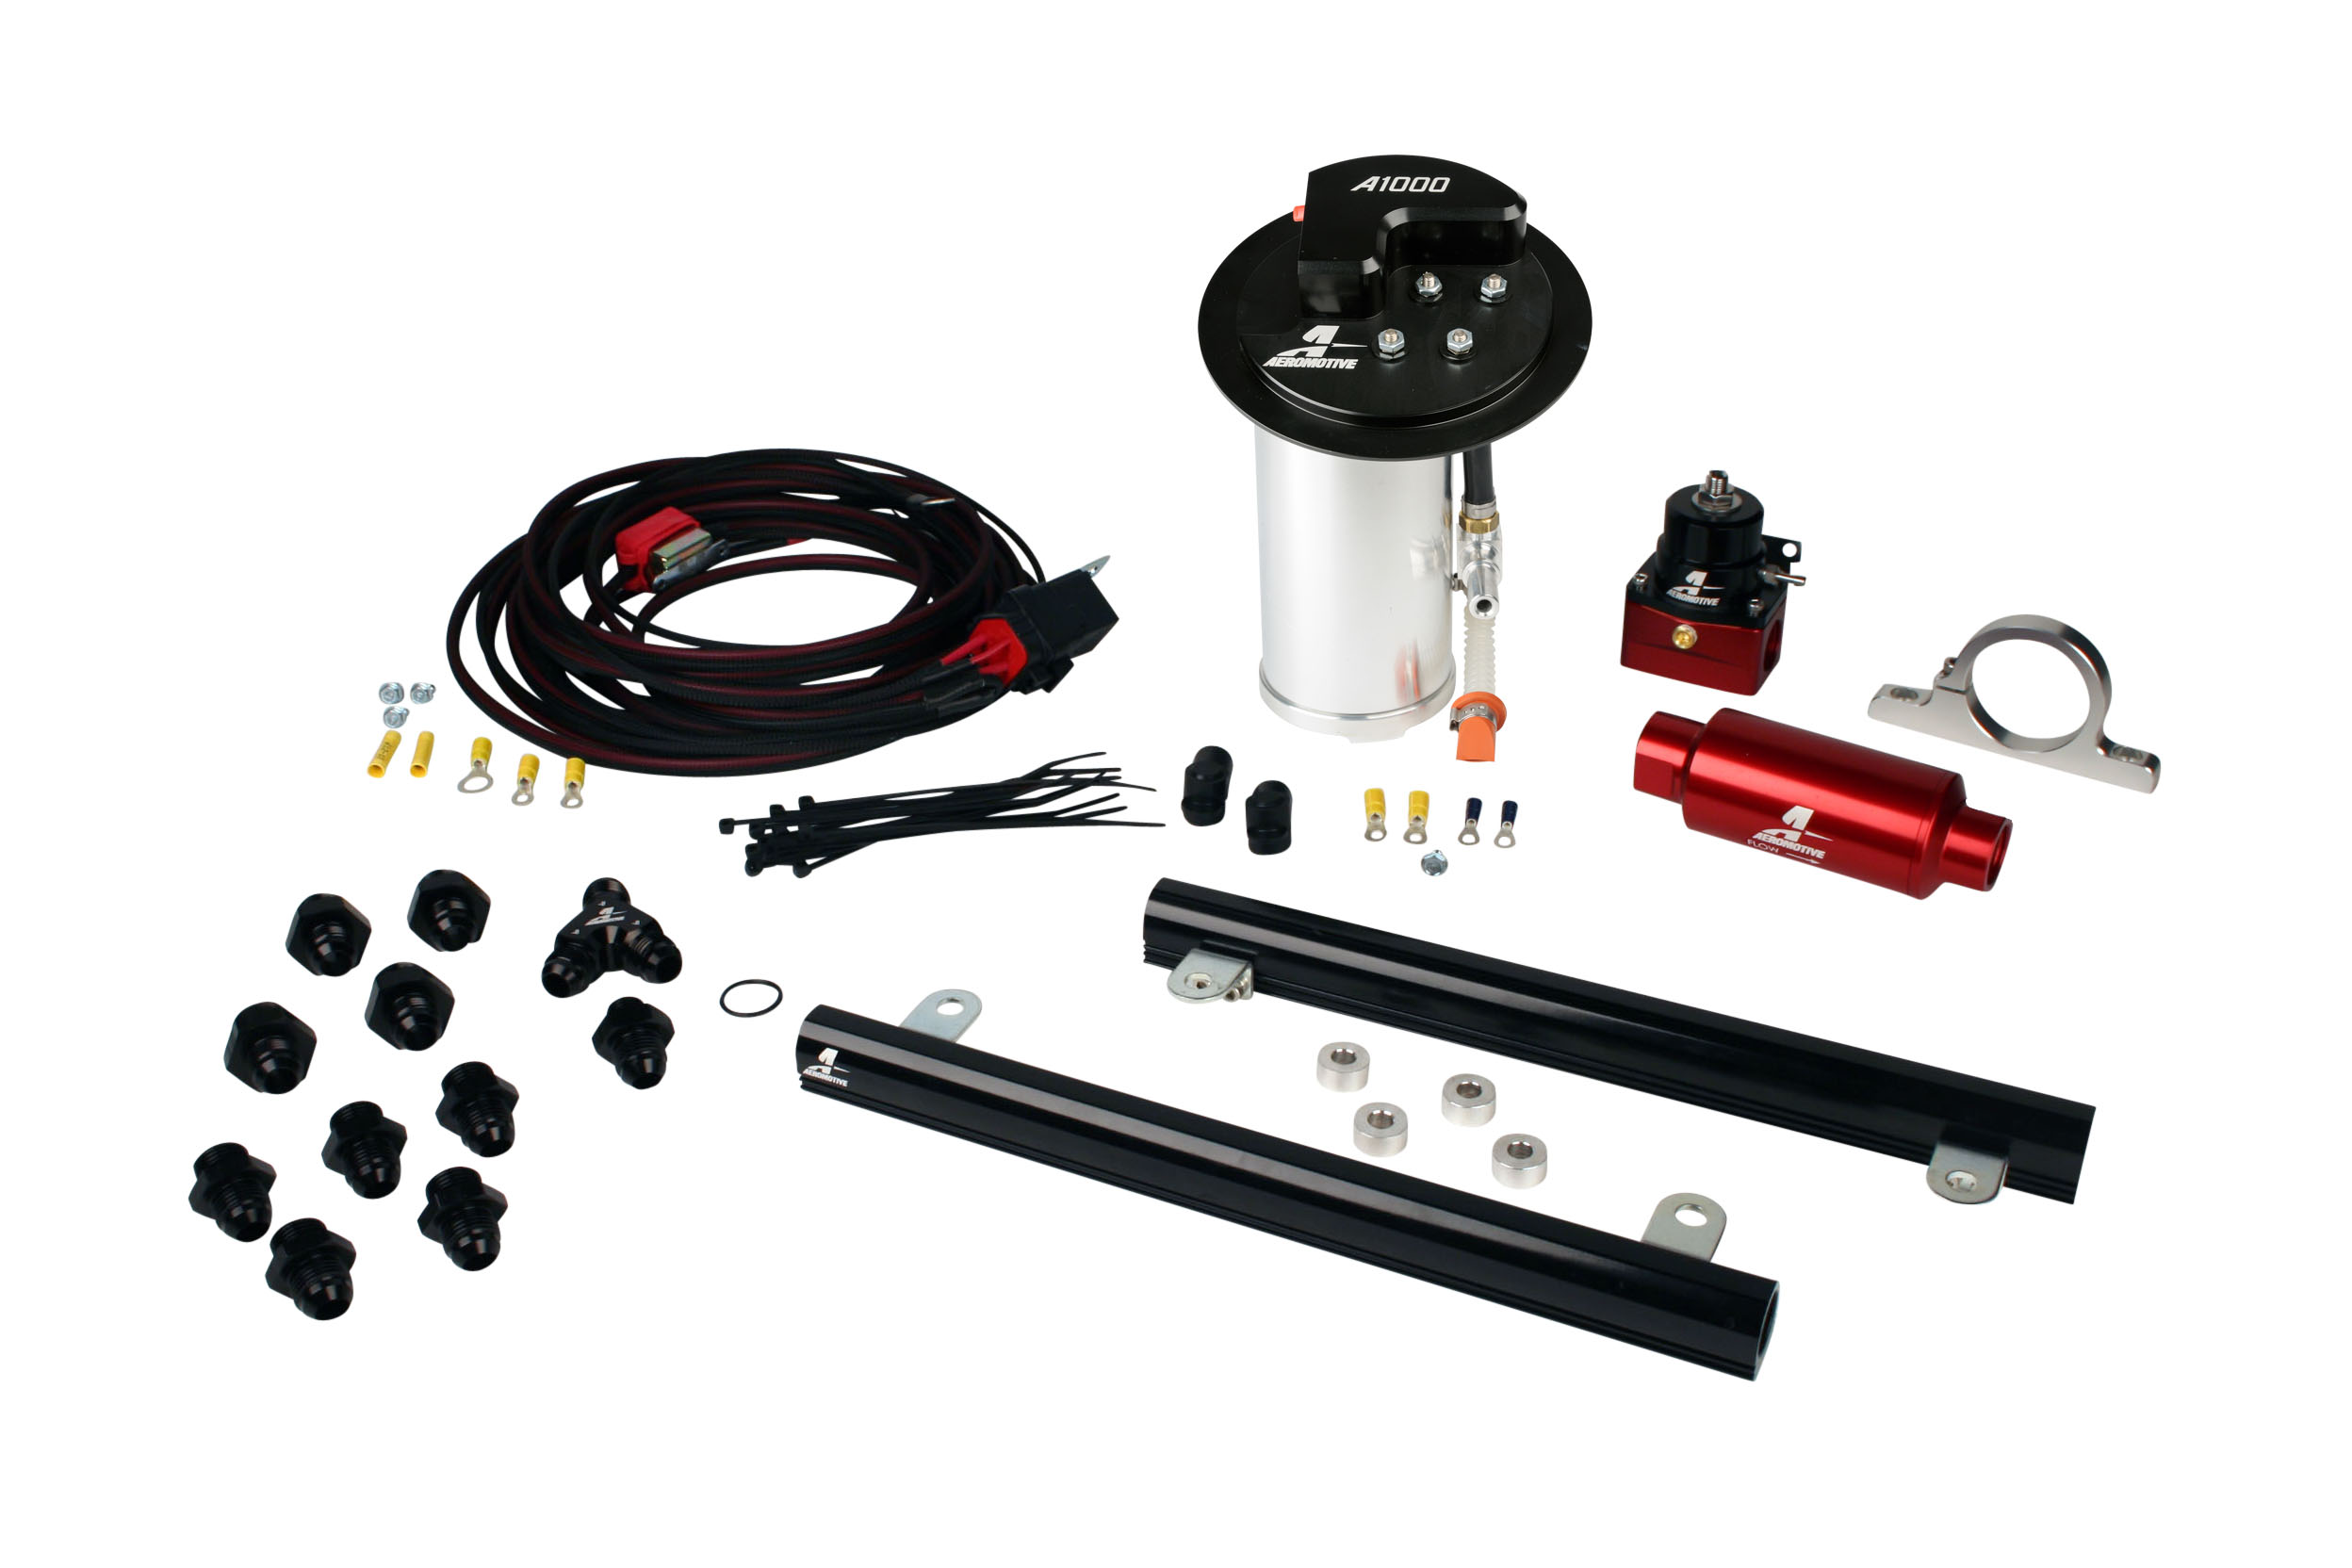 2010-2017 Ford Mustang GT Aeromotive Stealth A1000 Race Fuel System w/5.4L Supercharged Cobra Jet Fuel Rails